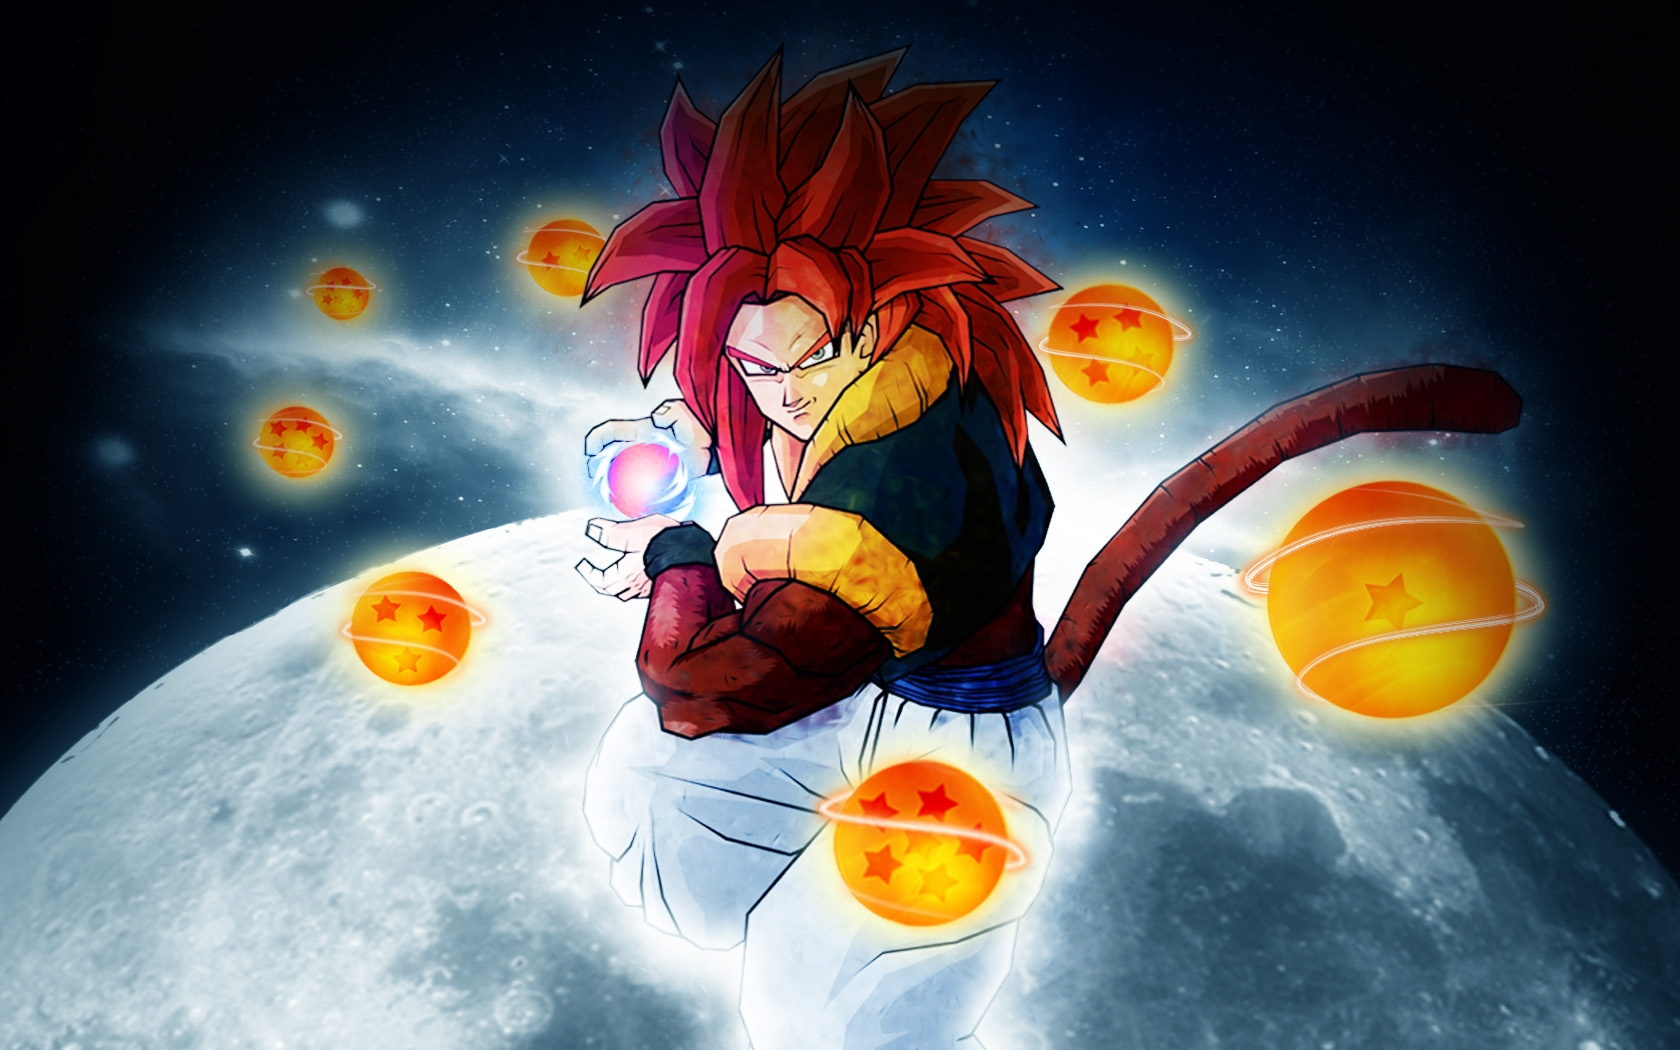 Gogeta ssj4 wallpapers wallpapersafari - Dragon ball gt goku wallpaper ...